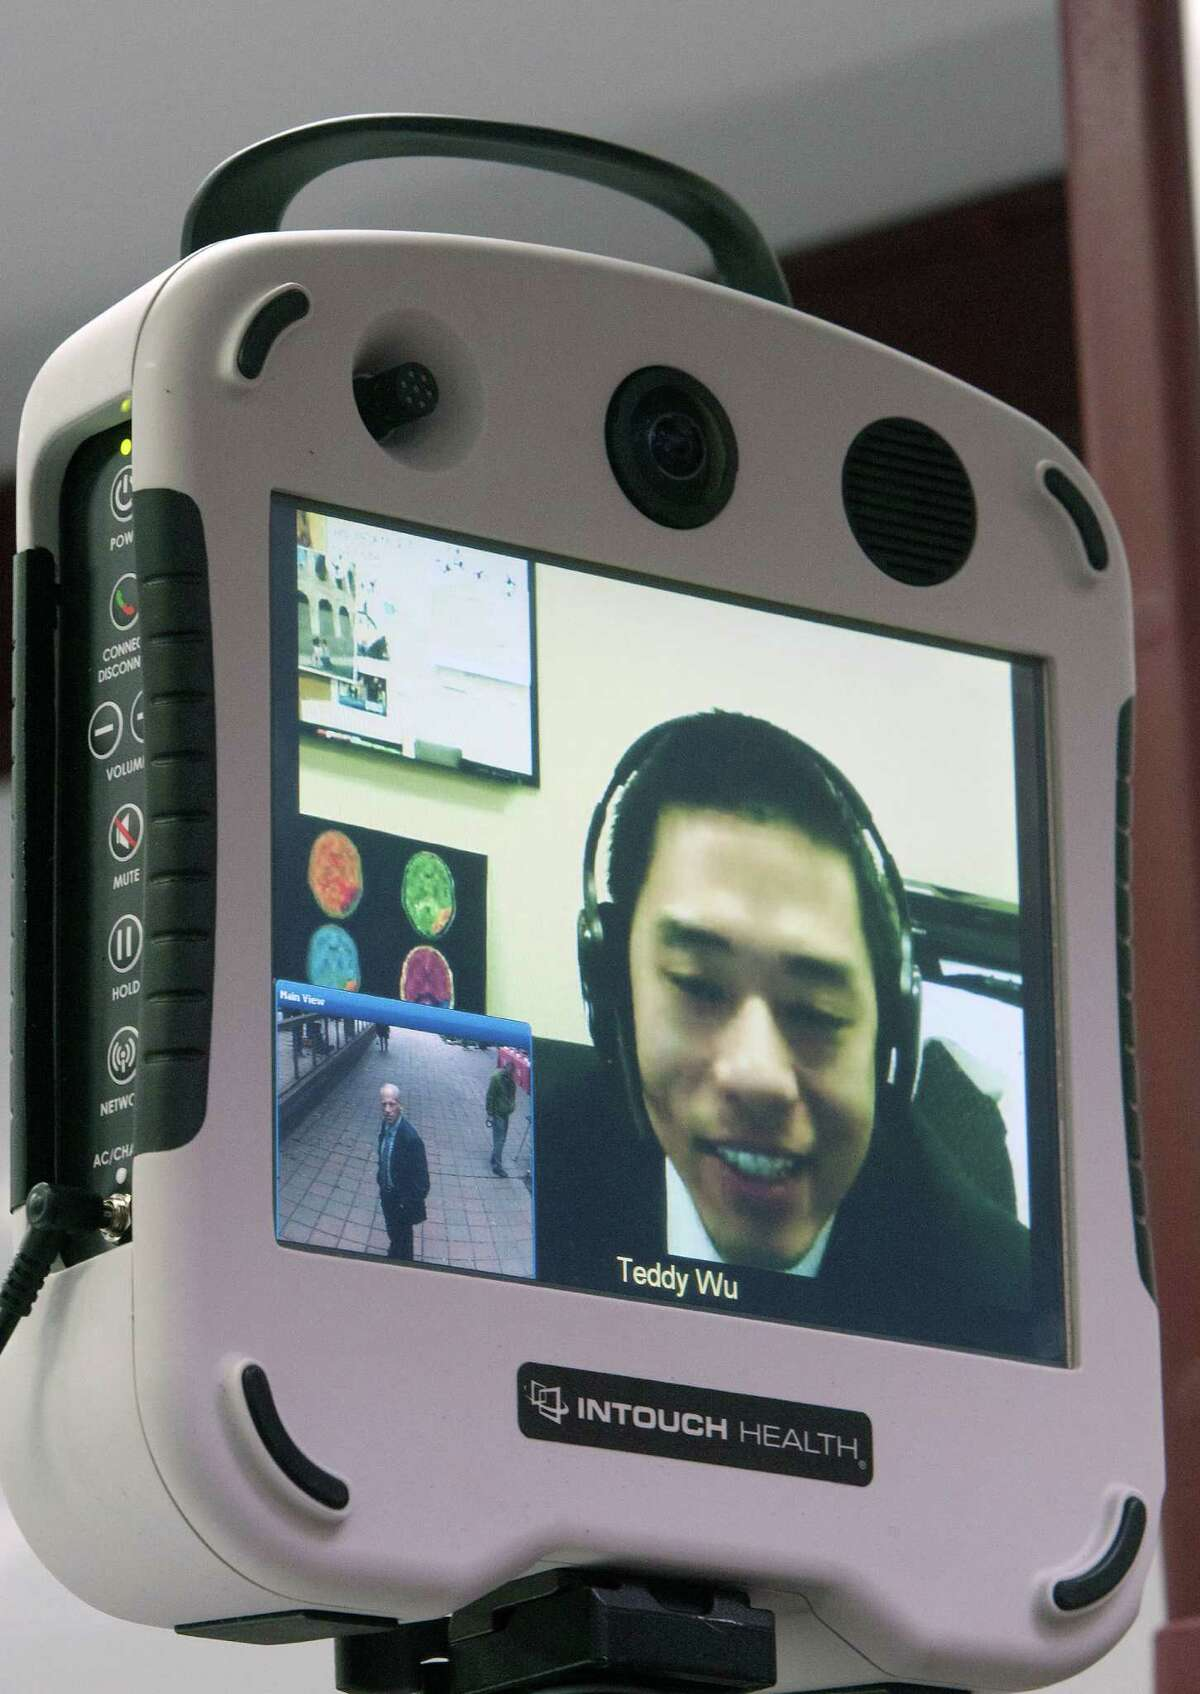 Dr. Tzu-Ching Wu, Director of Telemedicine, right, appears on a screen as M.D., director of stroke research in the Center for Innovation & Research at Memorial Hermann-TMC, James C. Grotta, left, stands outside the nation's first Mobile Stroke Unit to show the camera's ability at the University Of Texas Health And Science, Monday, Feb. 3, 2014, in Houston. On board the ambulance is a computed tomography (CT) scanner that allows a mobile stroke unit team member to quickly assess whether a patient is having a stroke caused by a blood clot and if so, the clot-buster tPA (tissue plasminogen activator) can be administered. Wu will be able to see what takes place in the ambulance via a camera as the stroke unit will be run in conjunction with the Emergency Medical Services of the Houston Fire Department, Bellaire Fire Department and West University Fire Department.